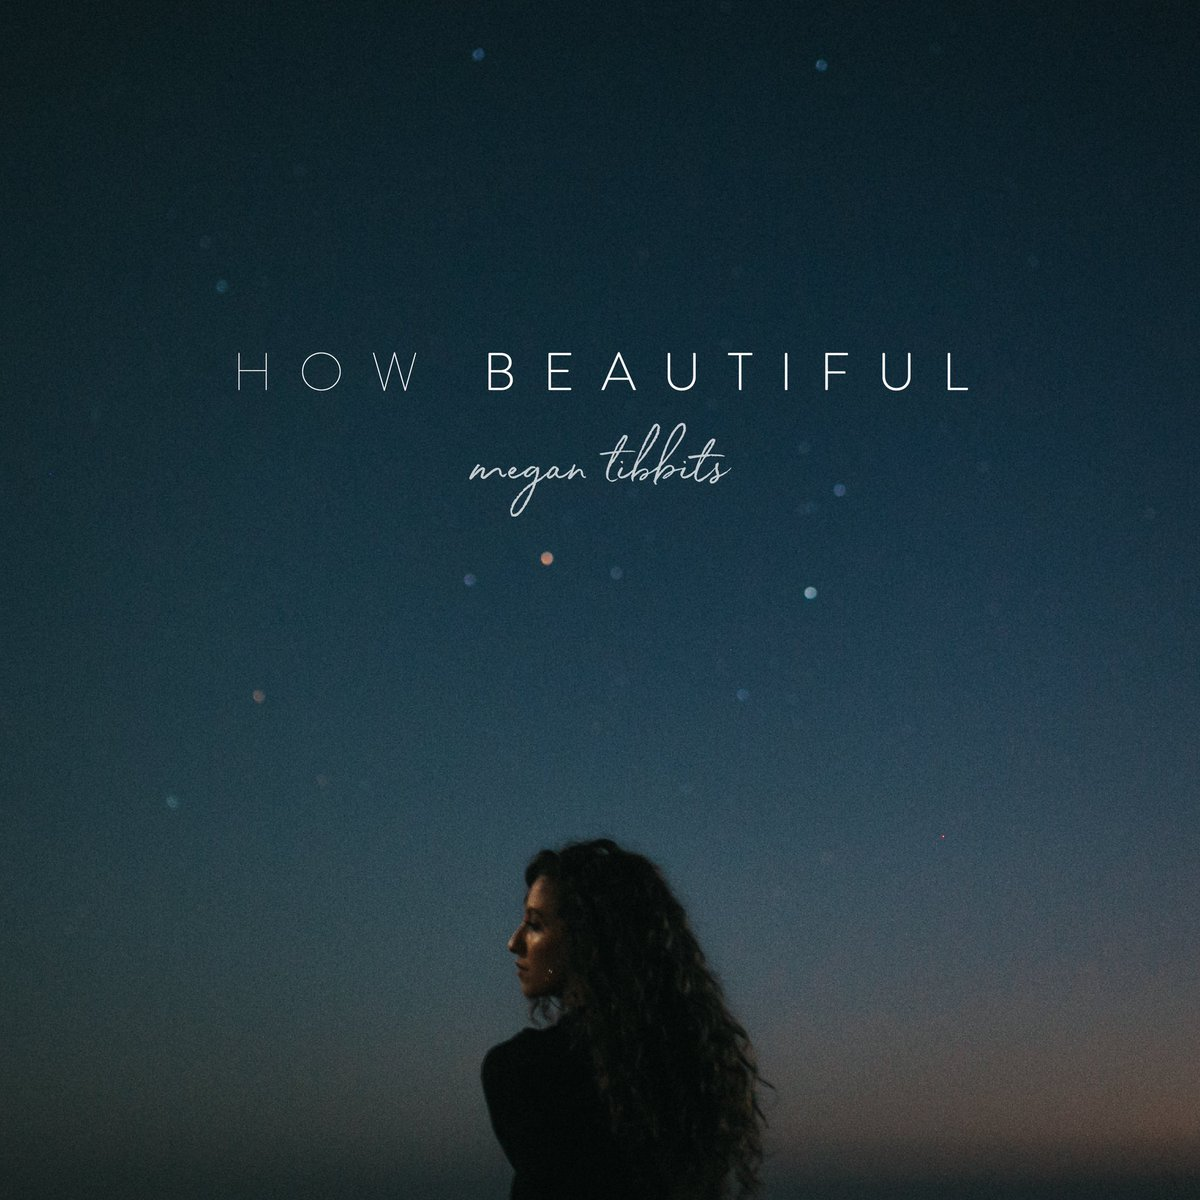 My new single 'How Beautiful' is OUT NOW on all platforms!!! 🎶  Listen here: https://t.co/s7herioN4Z  #newmusic #independentartist #singersongwriter #music #artist #spotify #applemusic #itunes #newrelease https://t.co/FksF3lTjTh